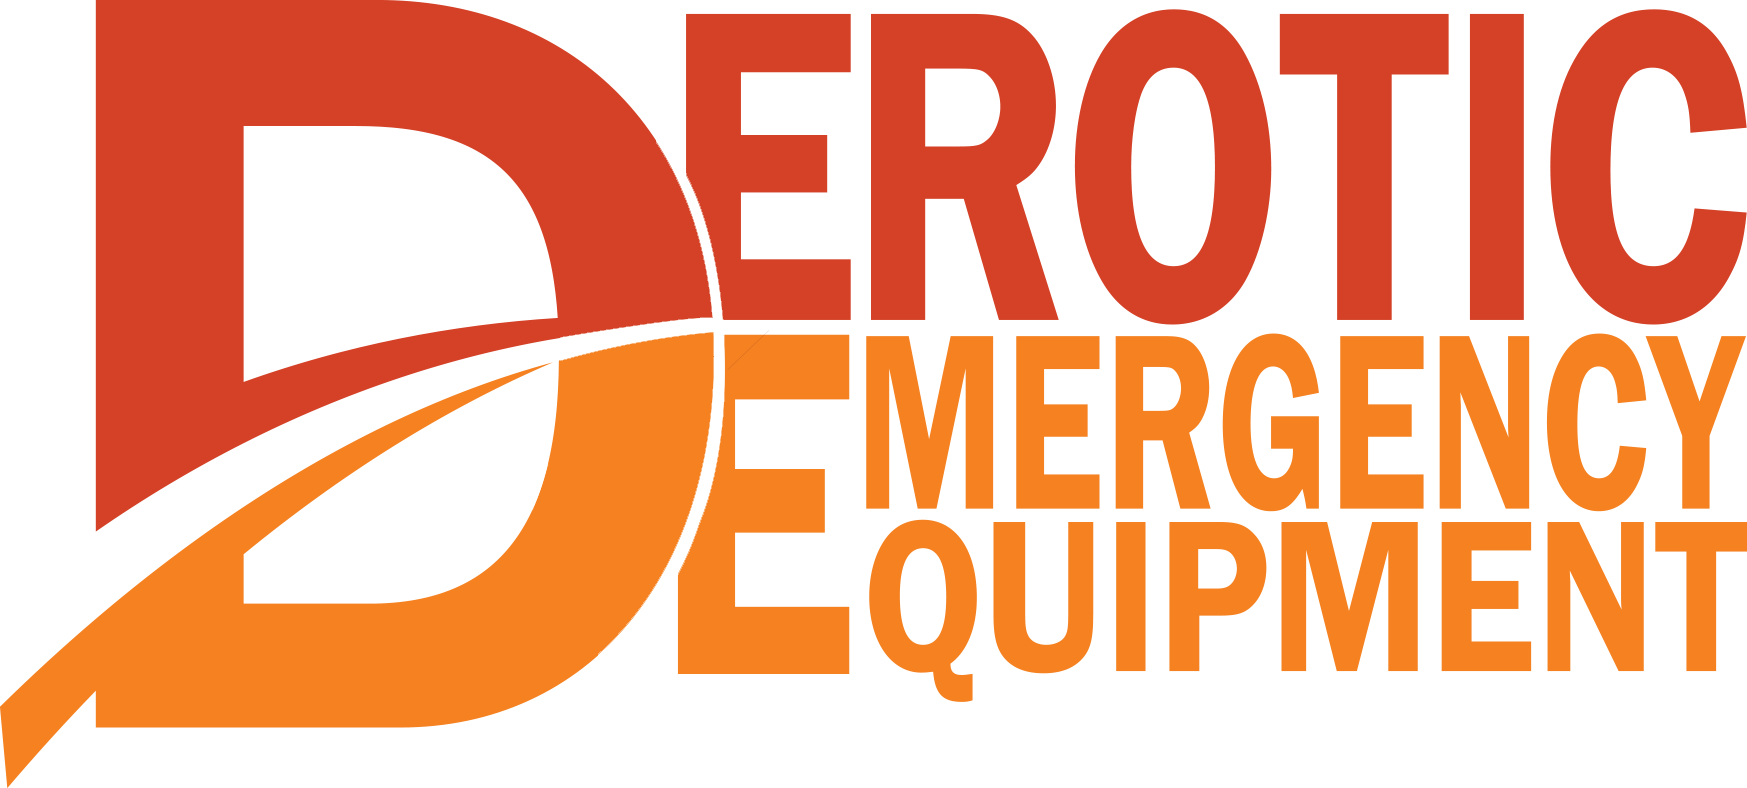 Derotic Emergency Equipment